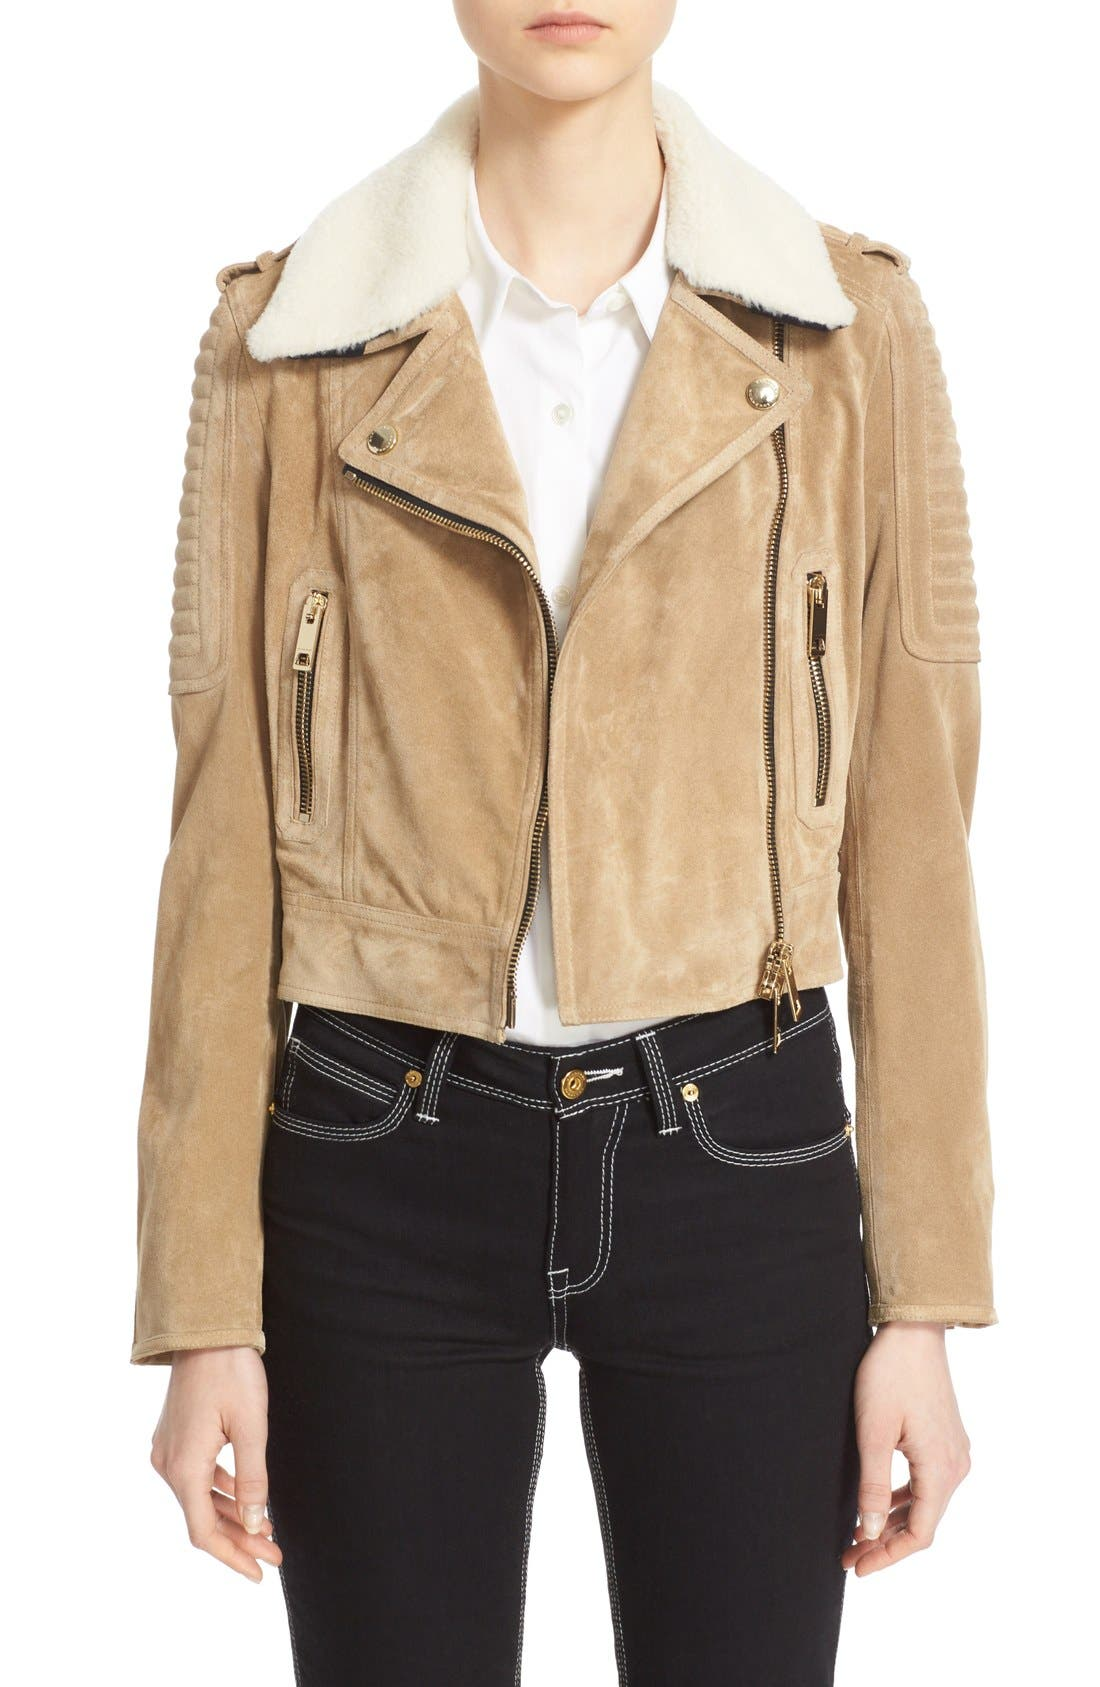 Alternate Image 1 Selected - Burberry 'Peakhurst' Suede Biker Jacket with Removable Genuine Shearling Collar